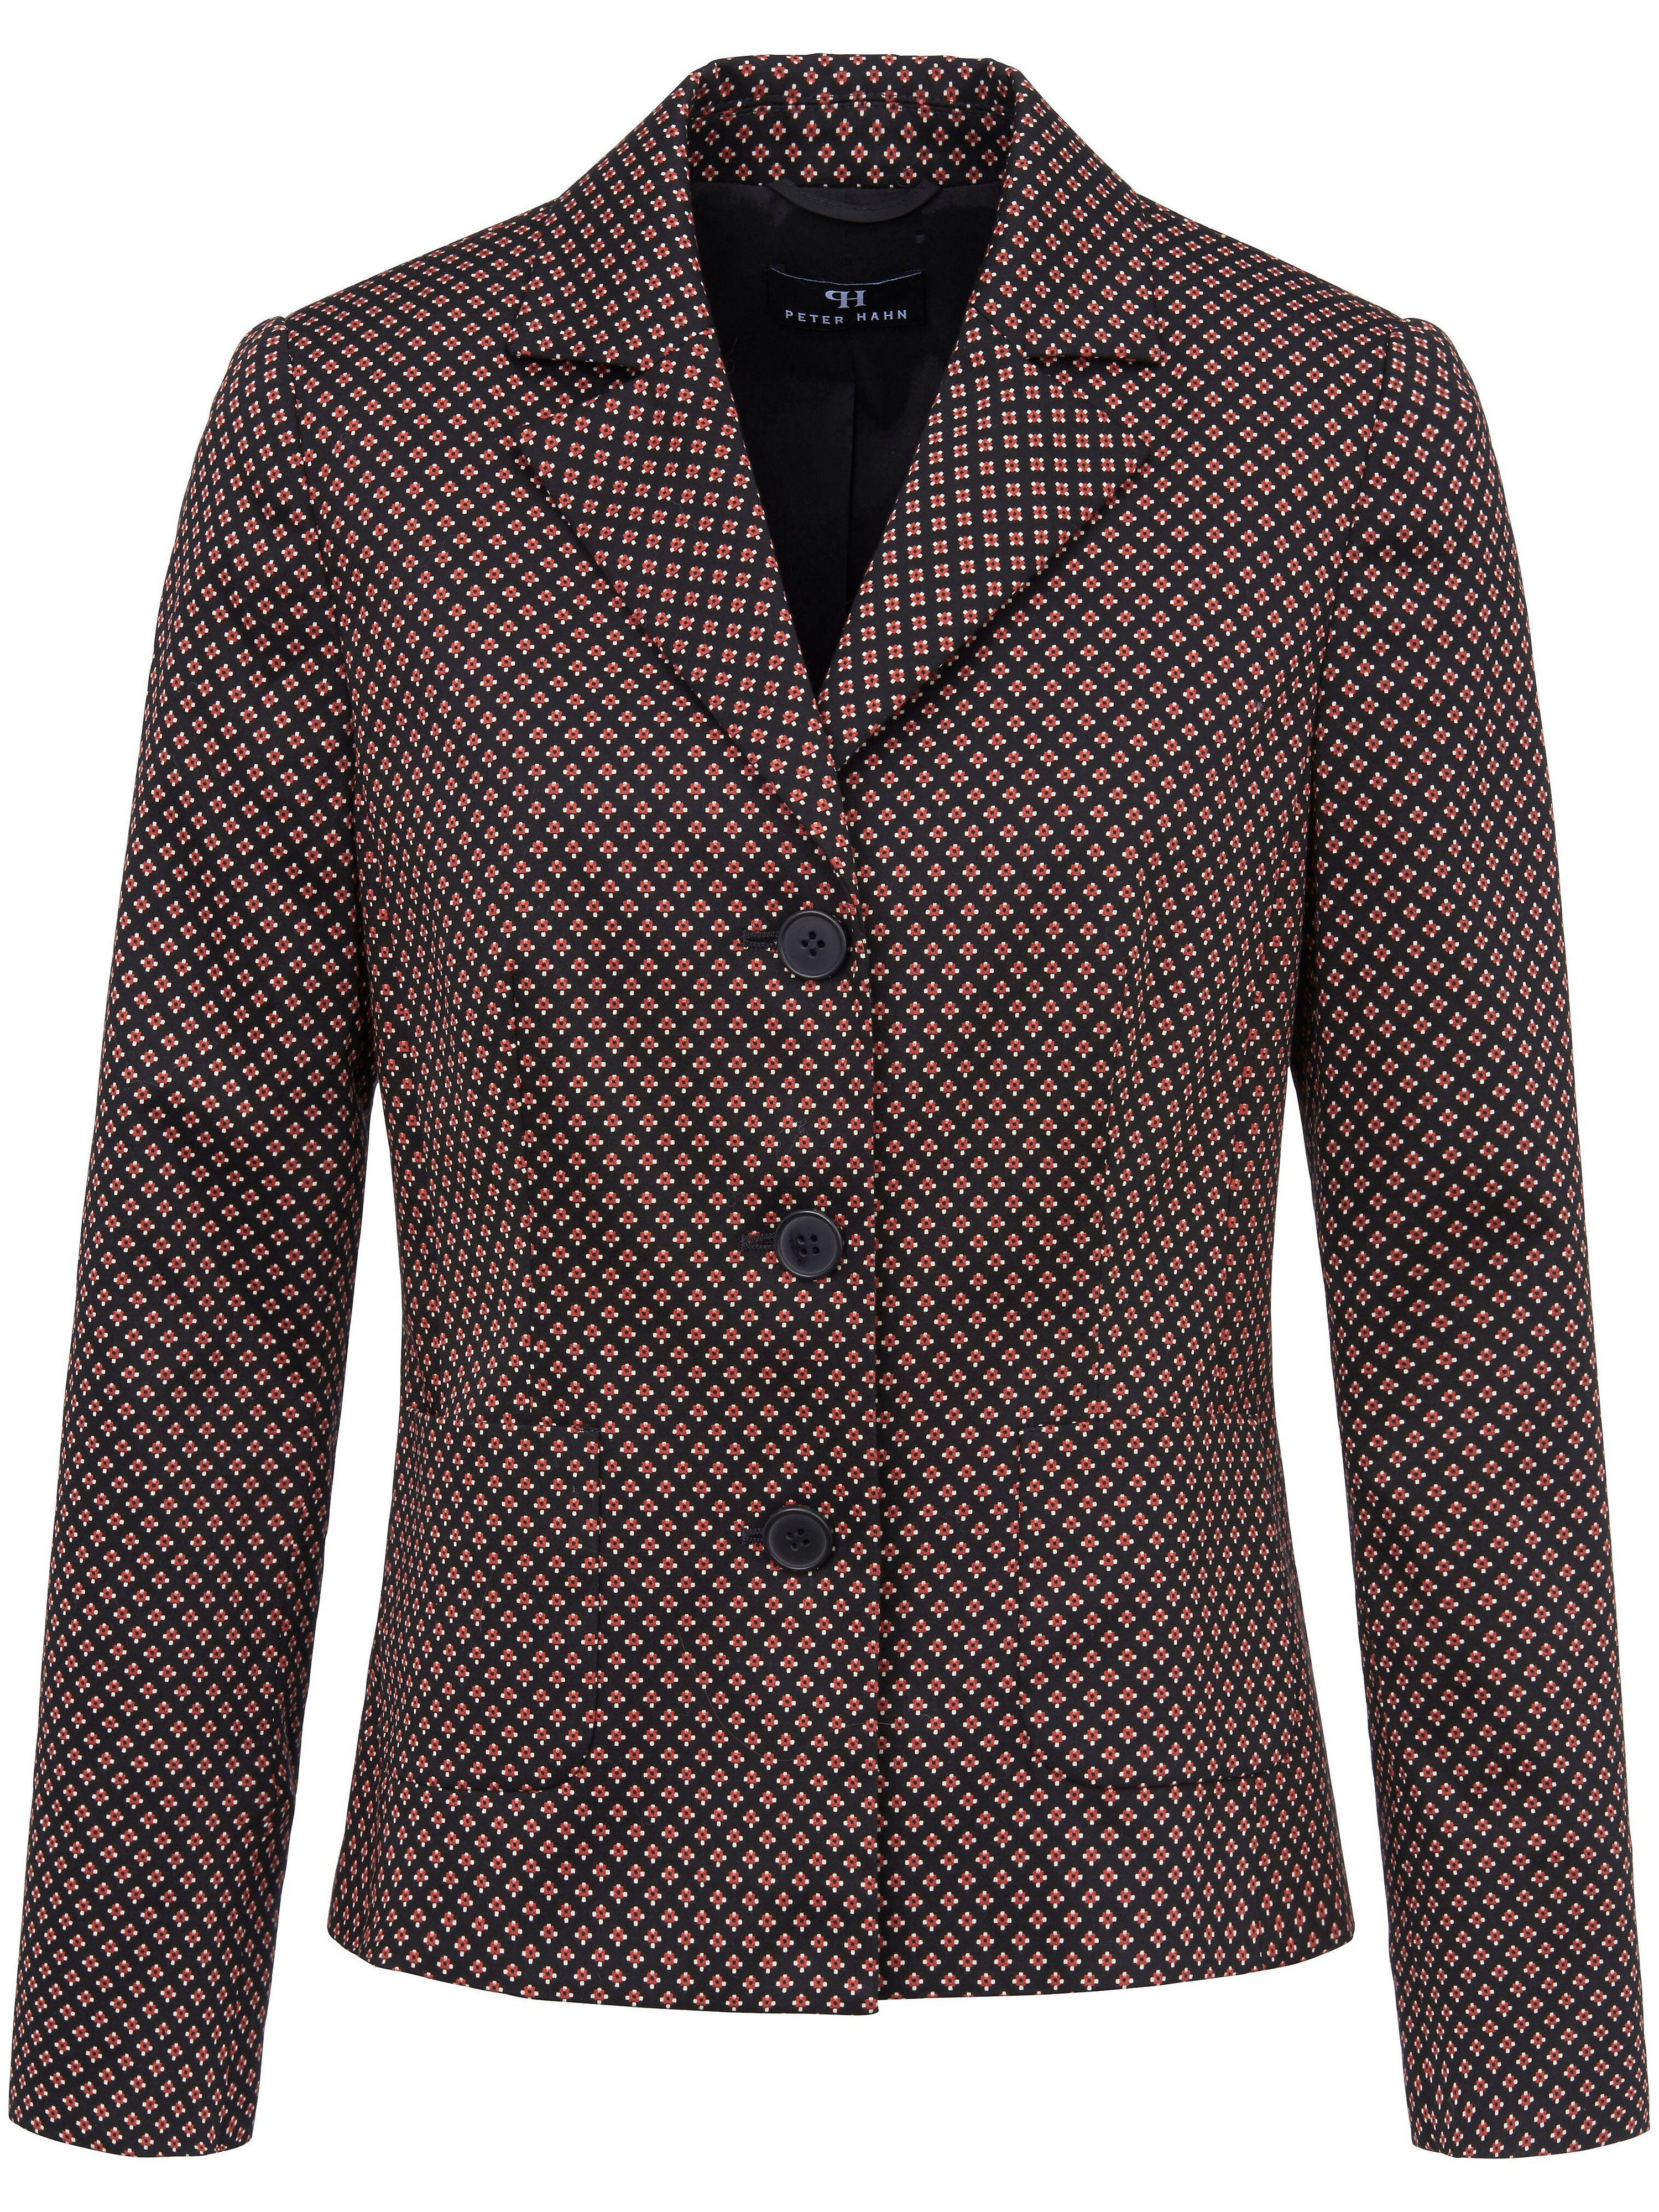 Blazer Van Peter Hahn multicolour